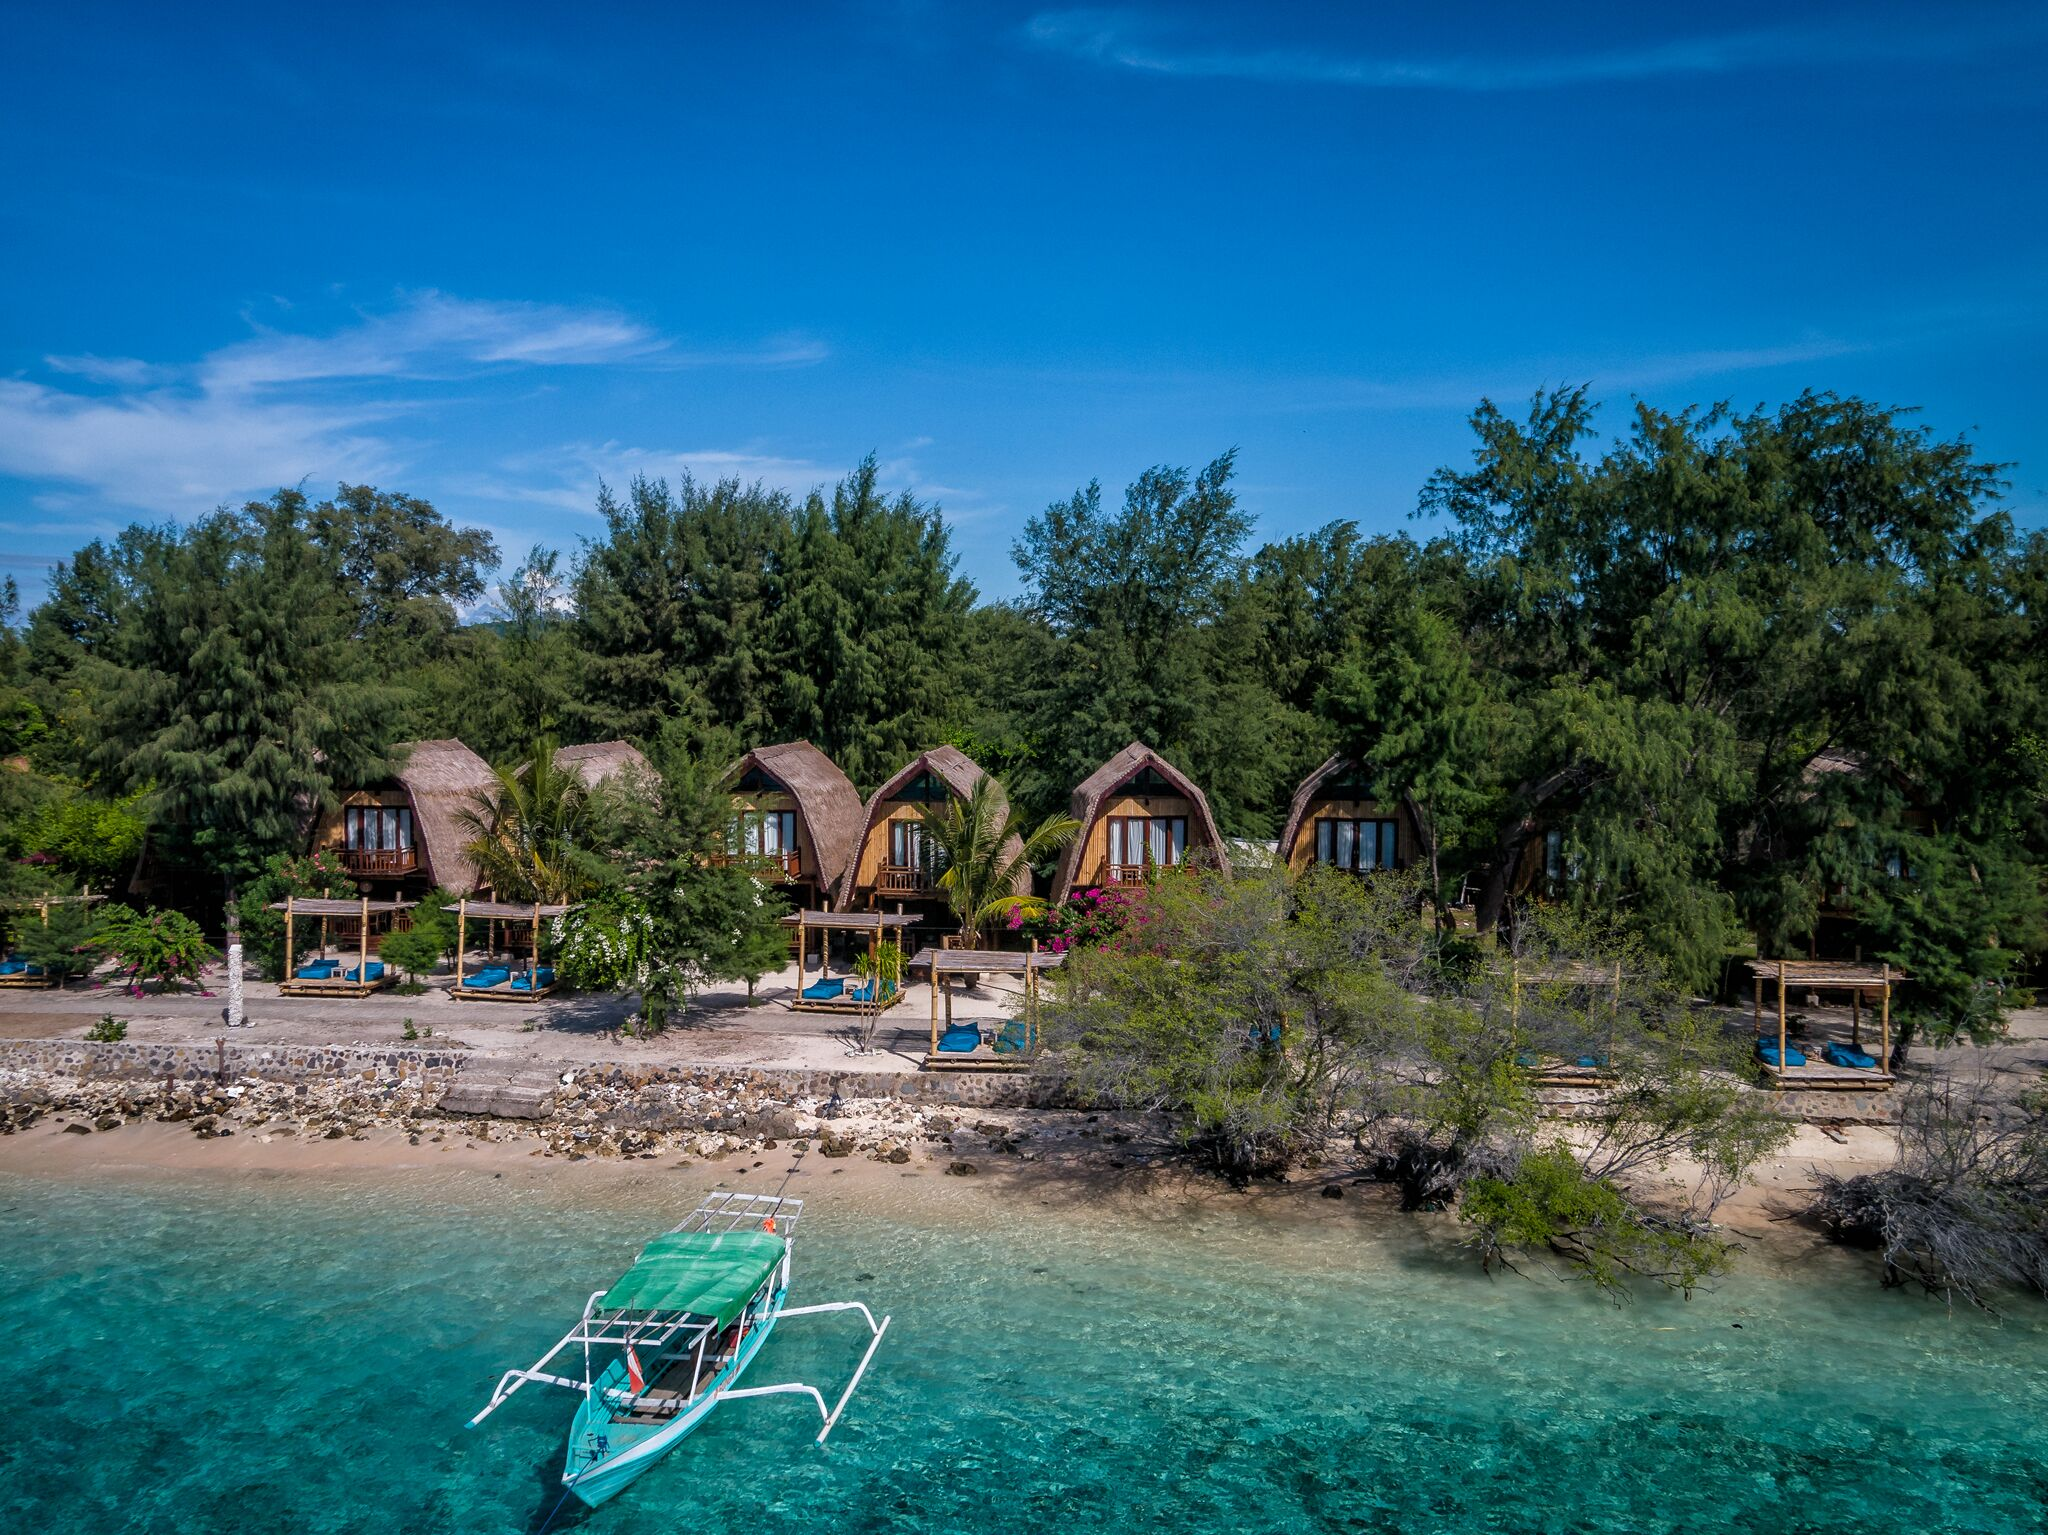 http://highend-traveller.com/karma-reef-presents-barefoot-luxury-on-the-idyllic-island-paradise-of-gili-meno/